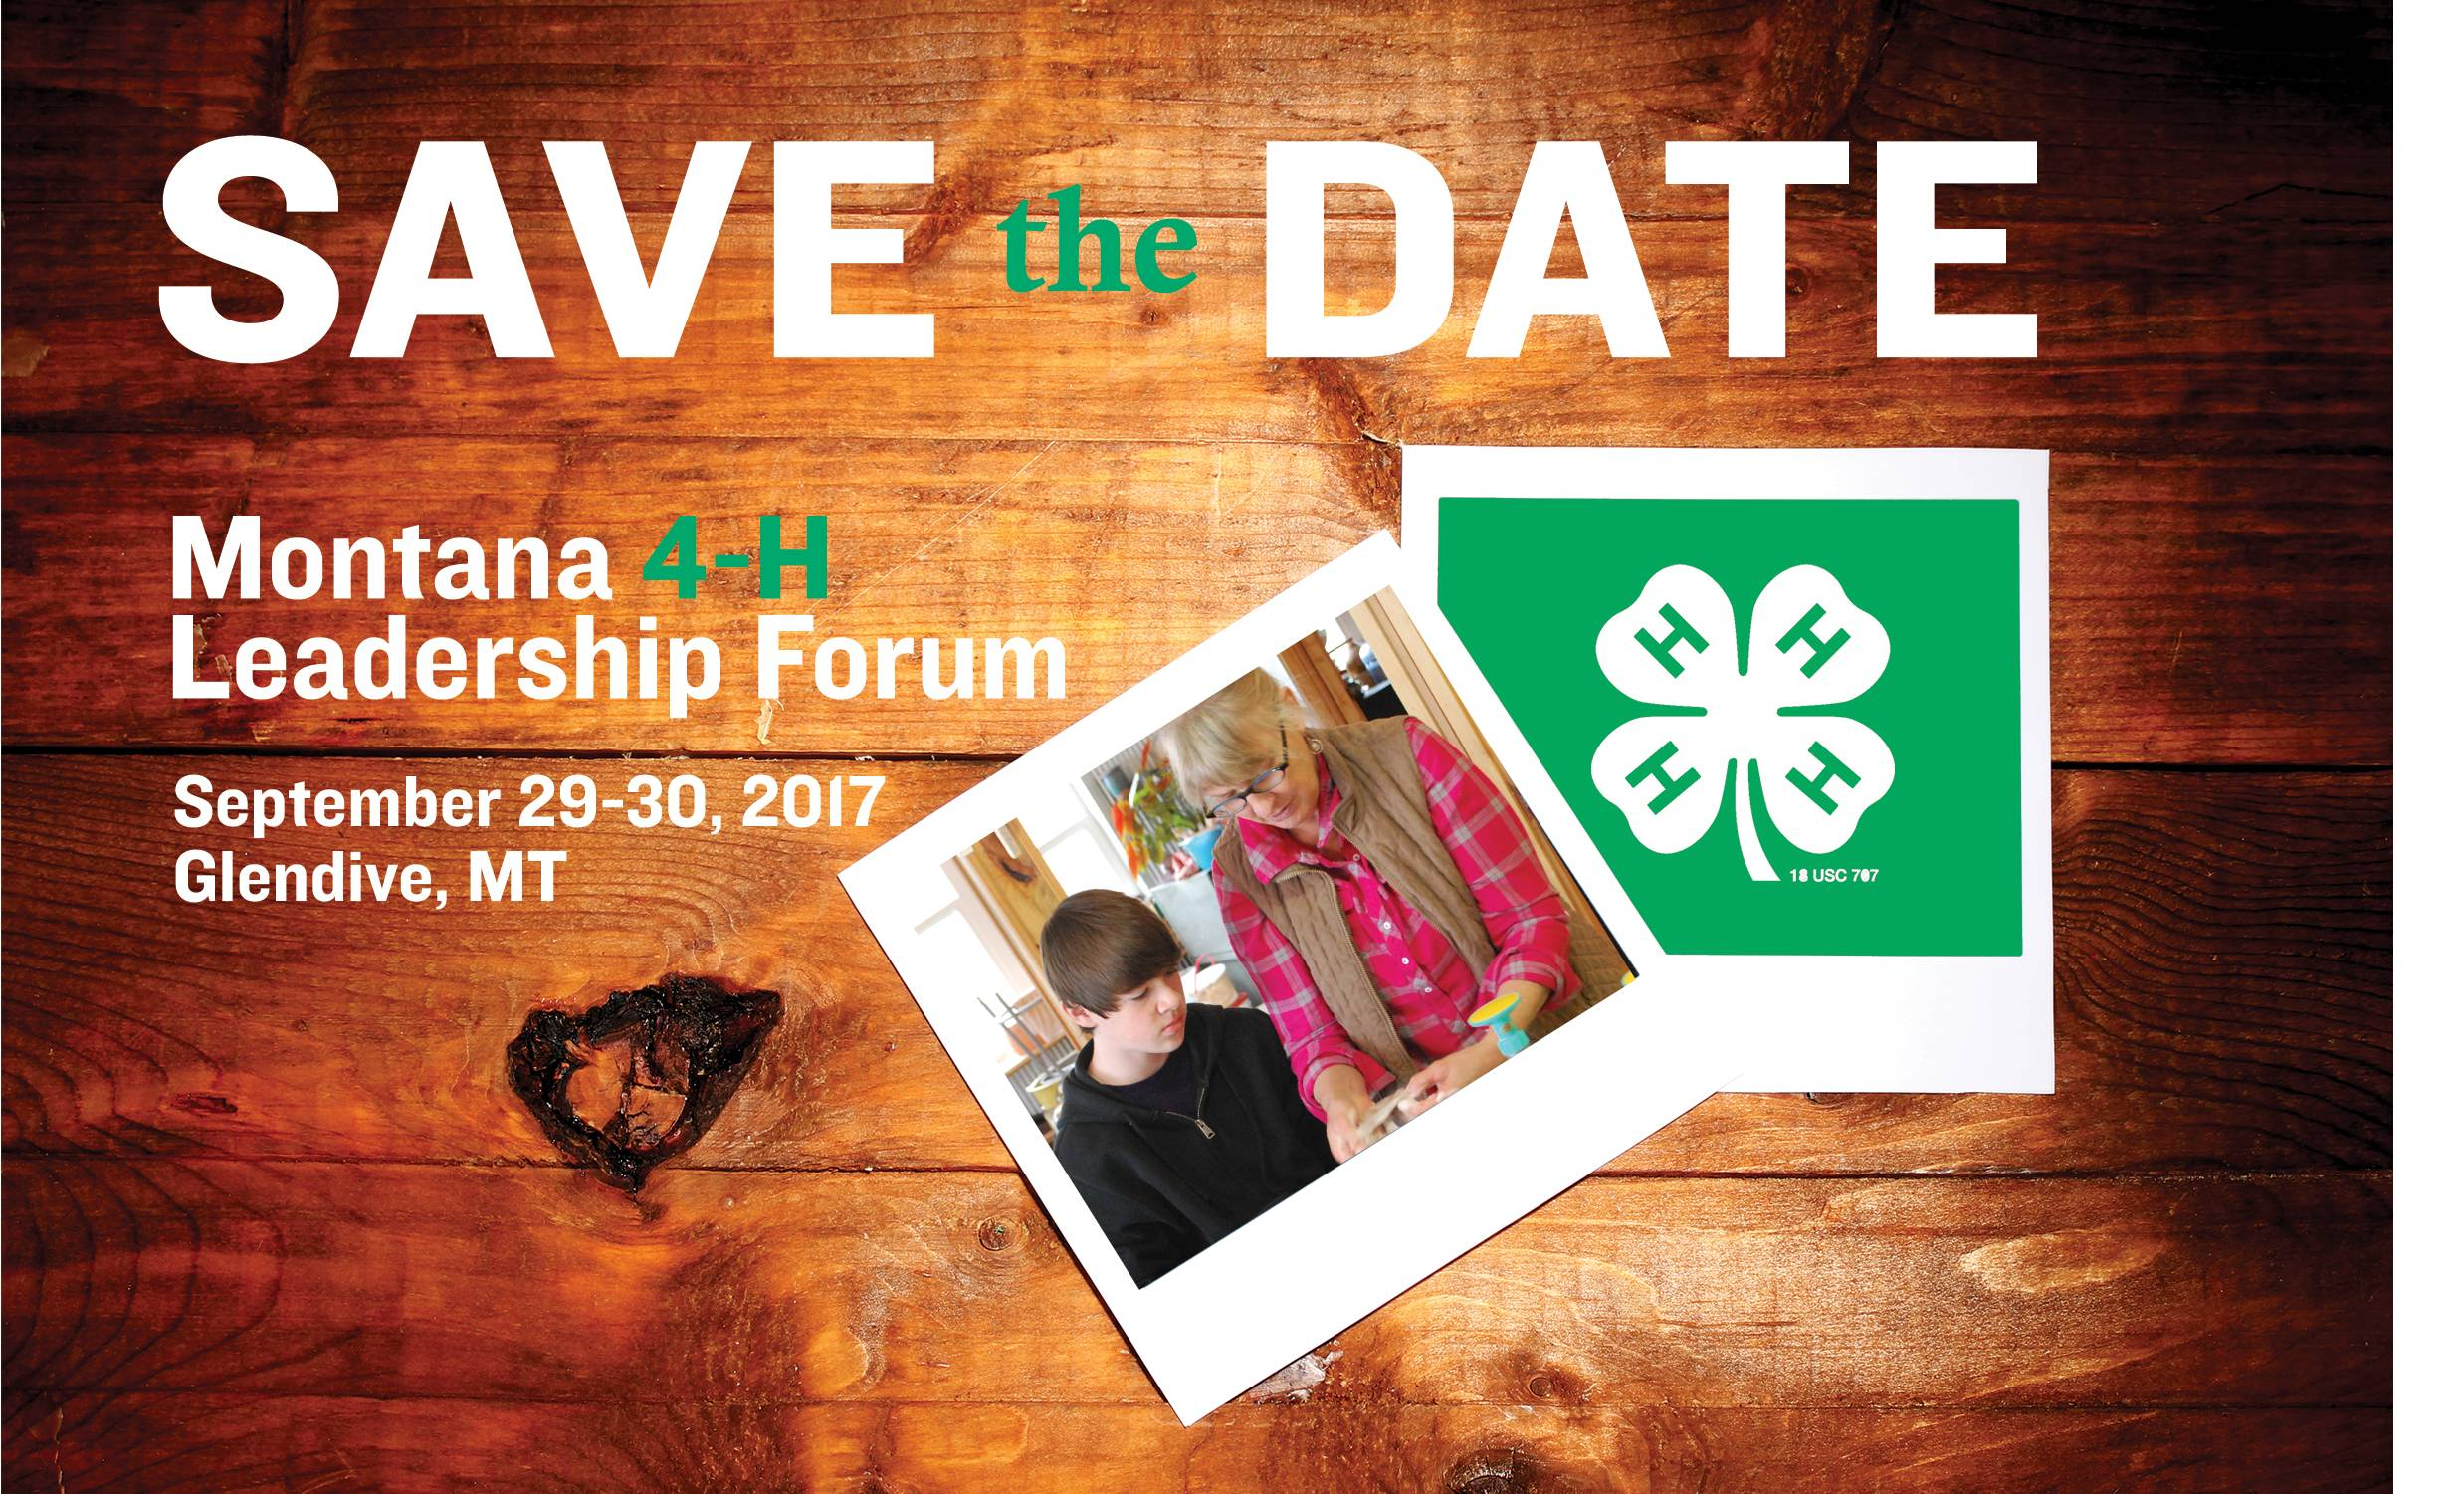 4 h poster designs - Lf Save The Date Image